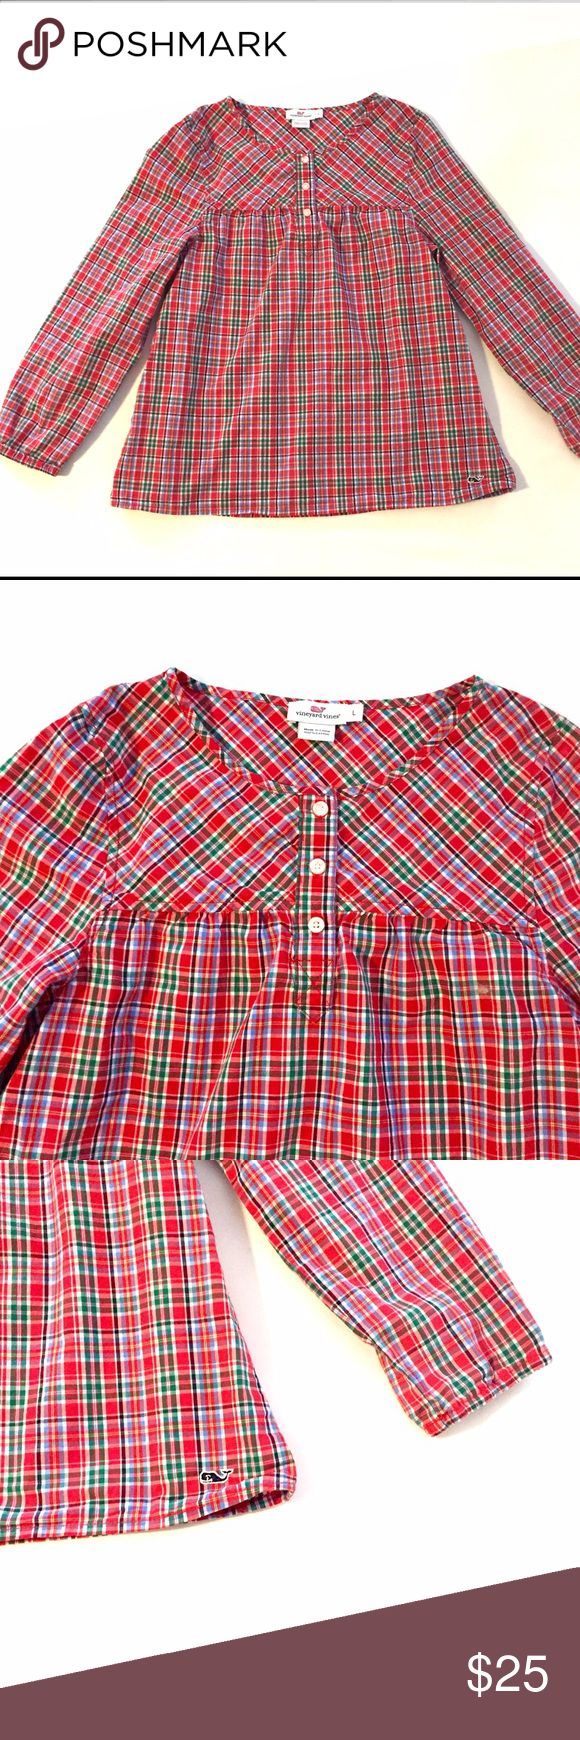 Vineyard Vines Girls Popover Size L Plaid Popover top from Vineyard Vines. Great condition! Size L Vineyard Vines Shirts & Tops